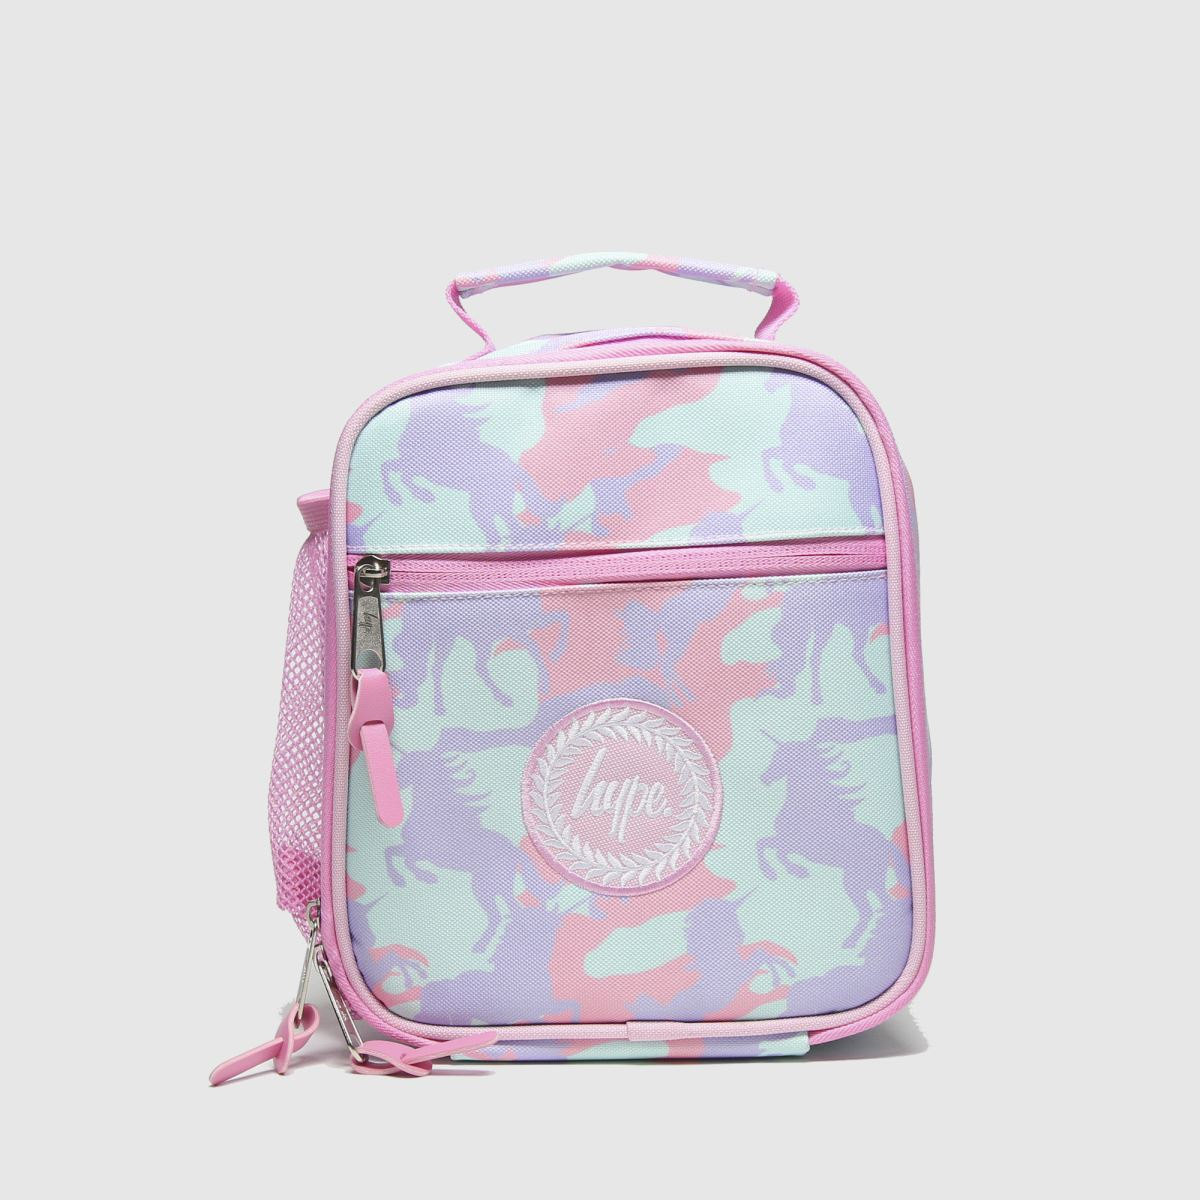 Accessories Hype Pink Lunch Bag